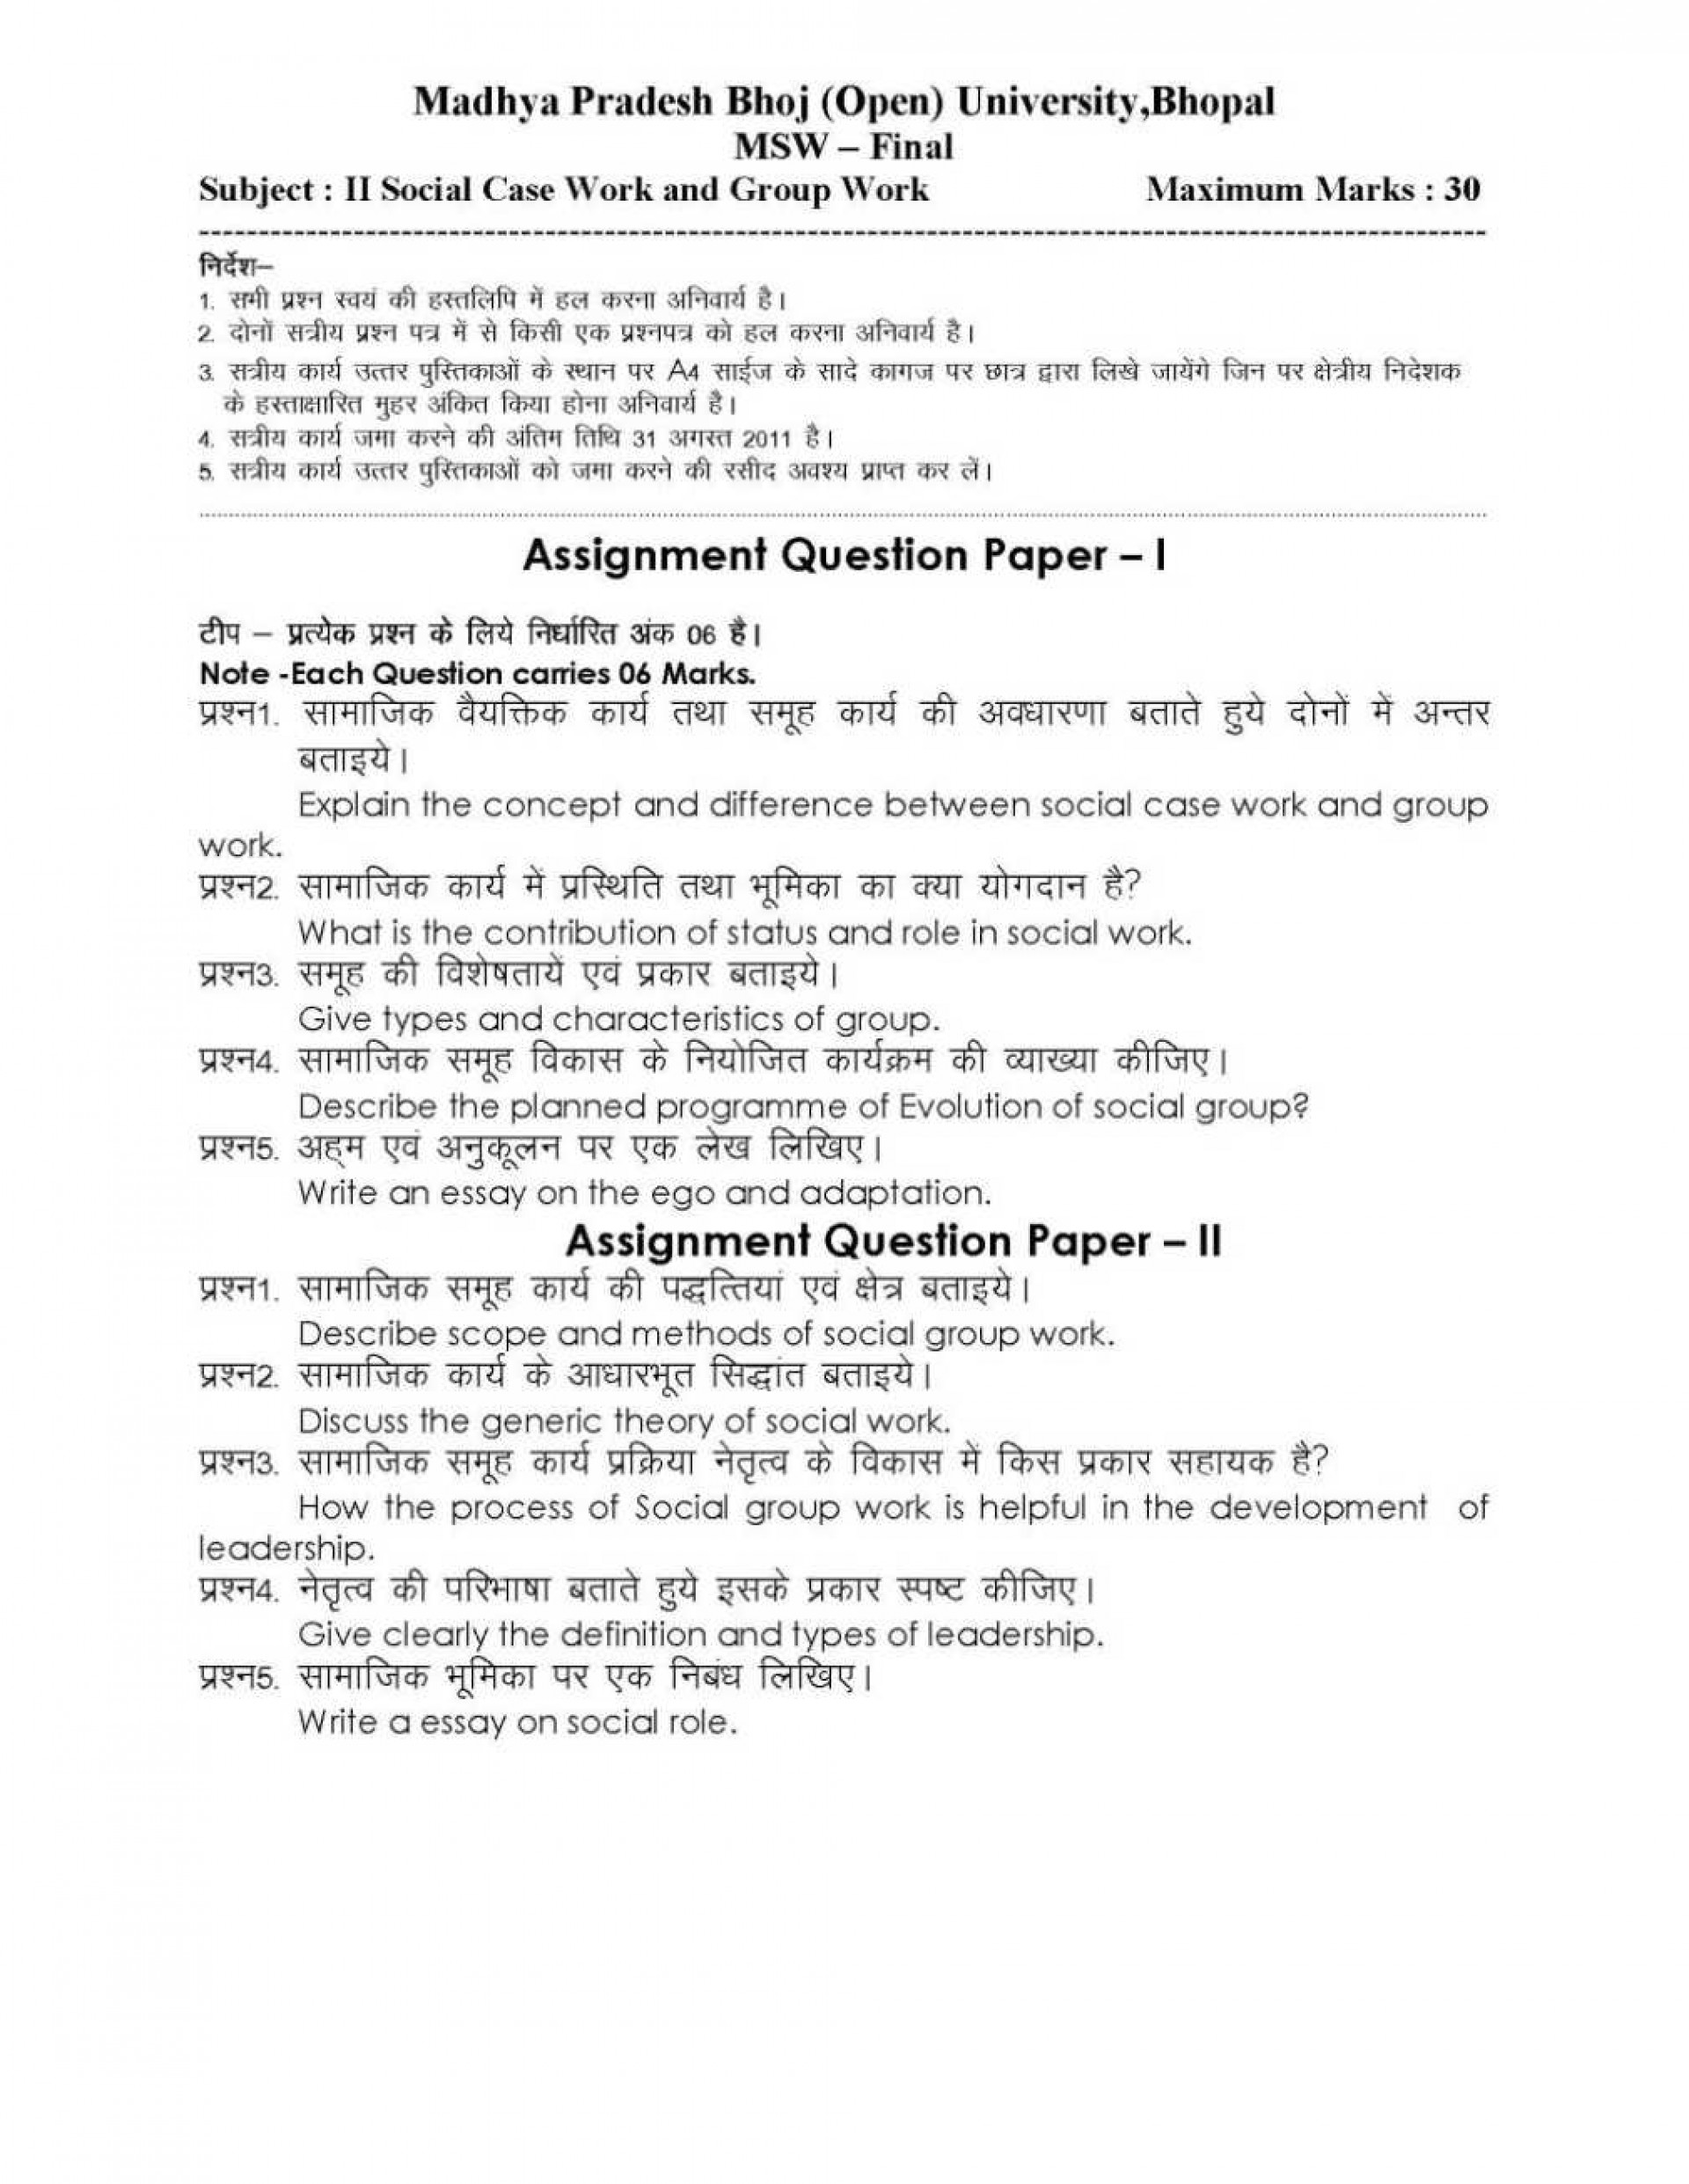 020 Bhoj University Bhopal Msw Leadership Essays Unique Essay Examples Personal Philosophy Paper Mba College 1920